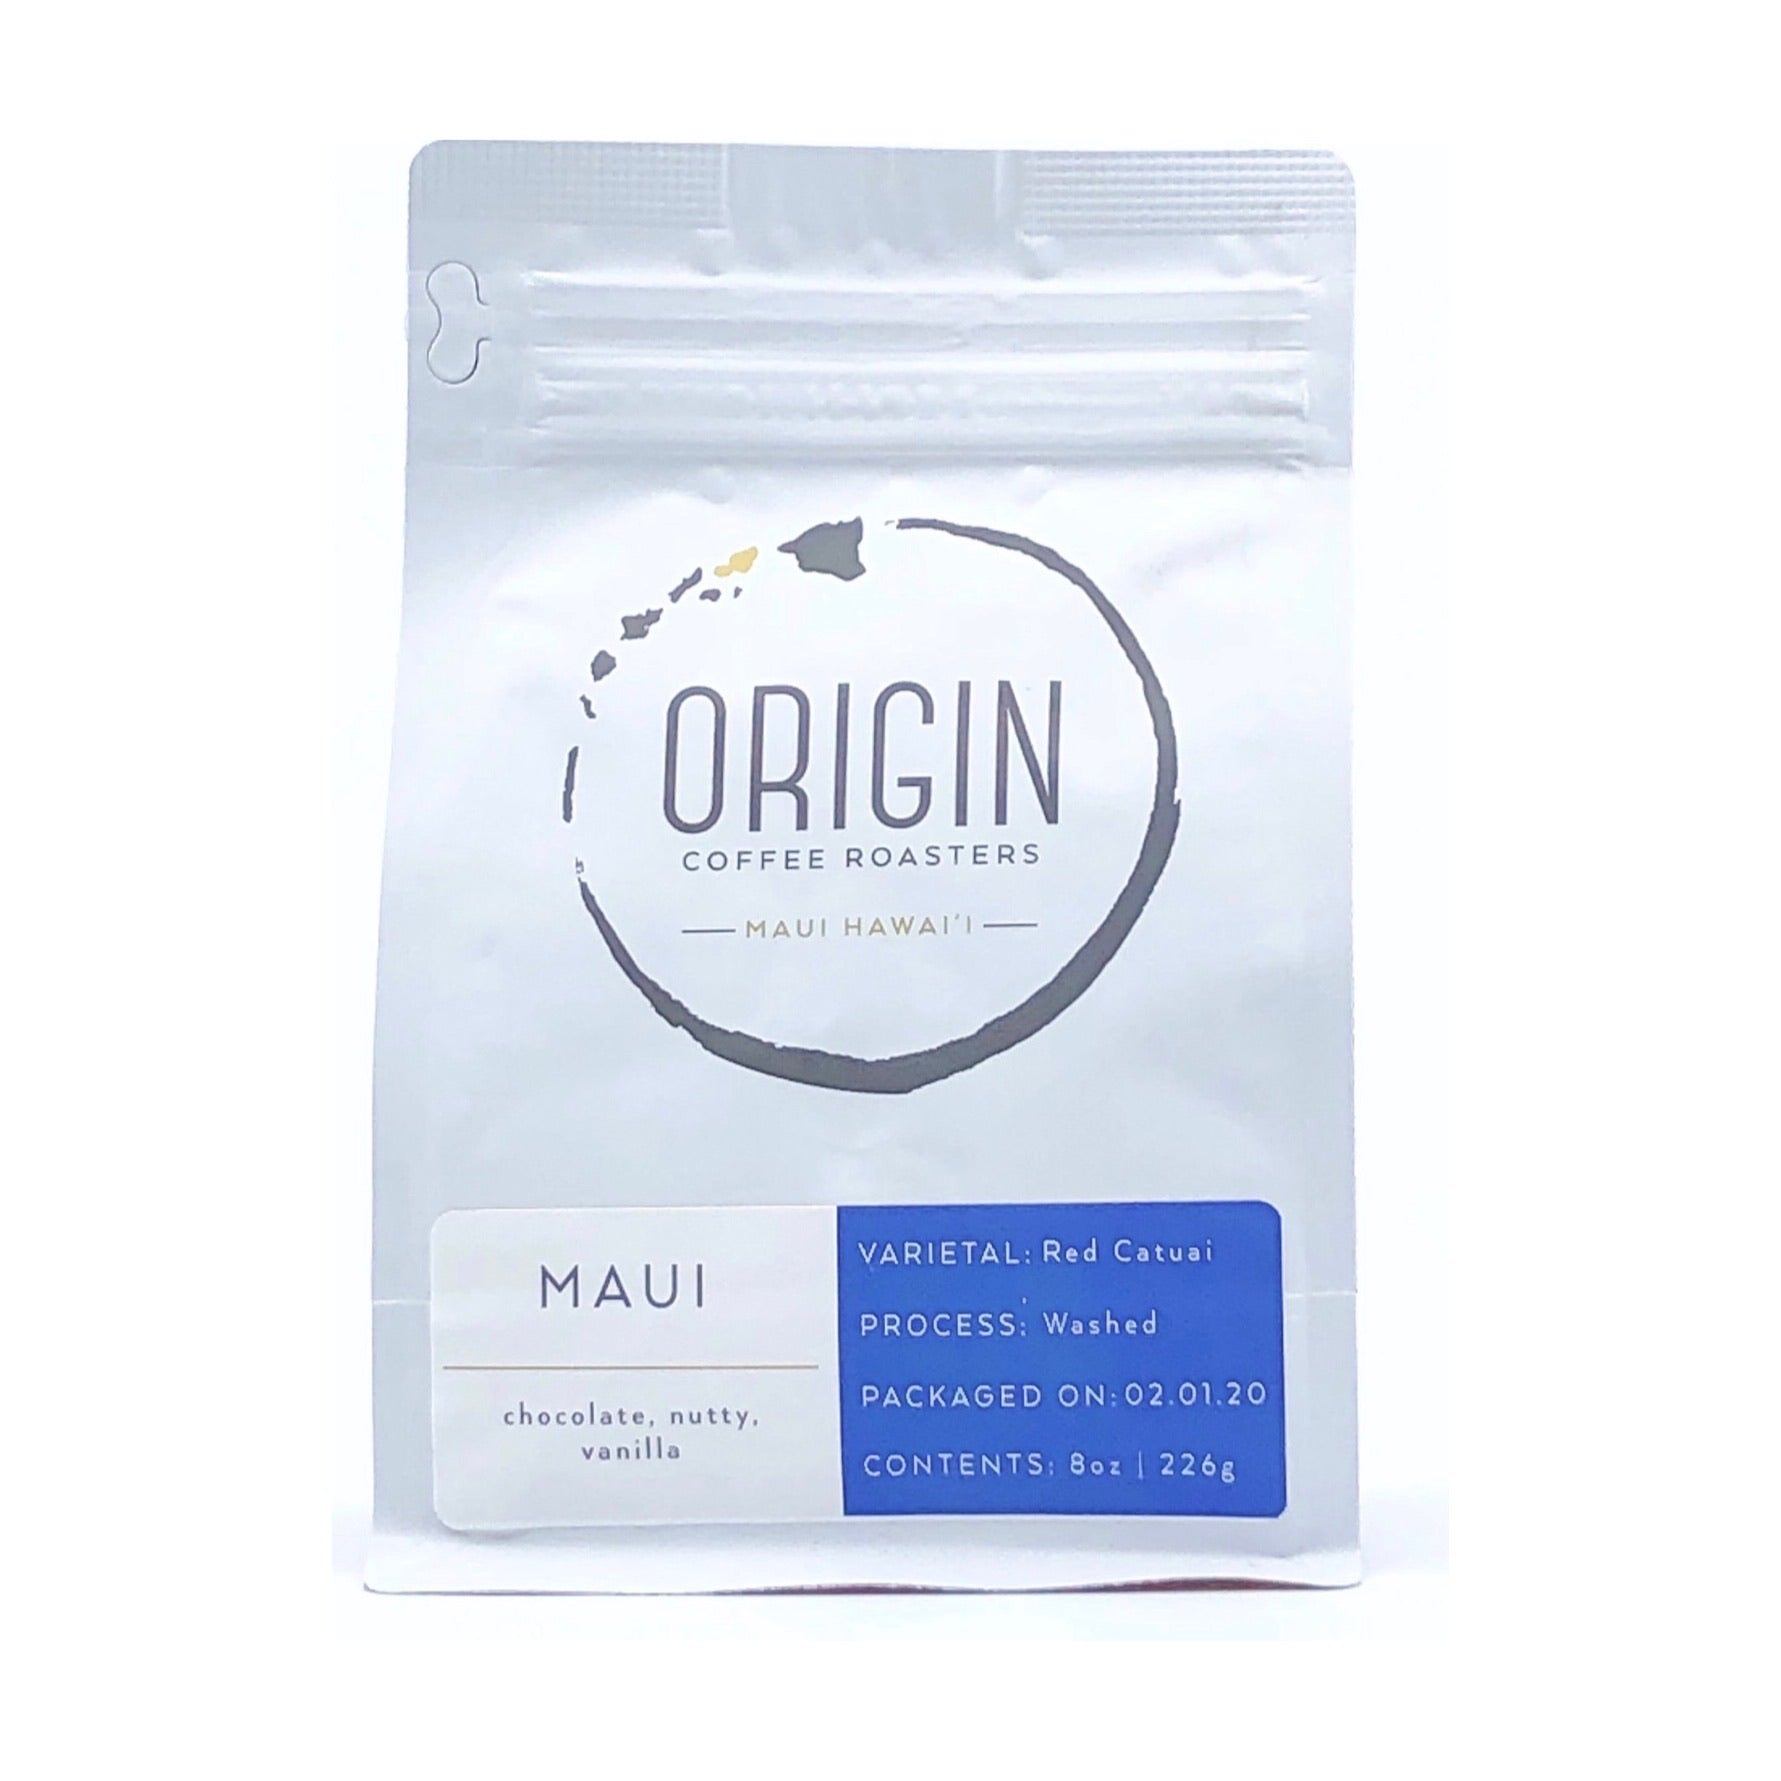 ORIGIN MAUI ROASTED  12 OZ COFFEE